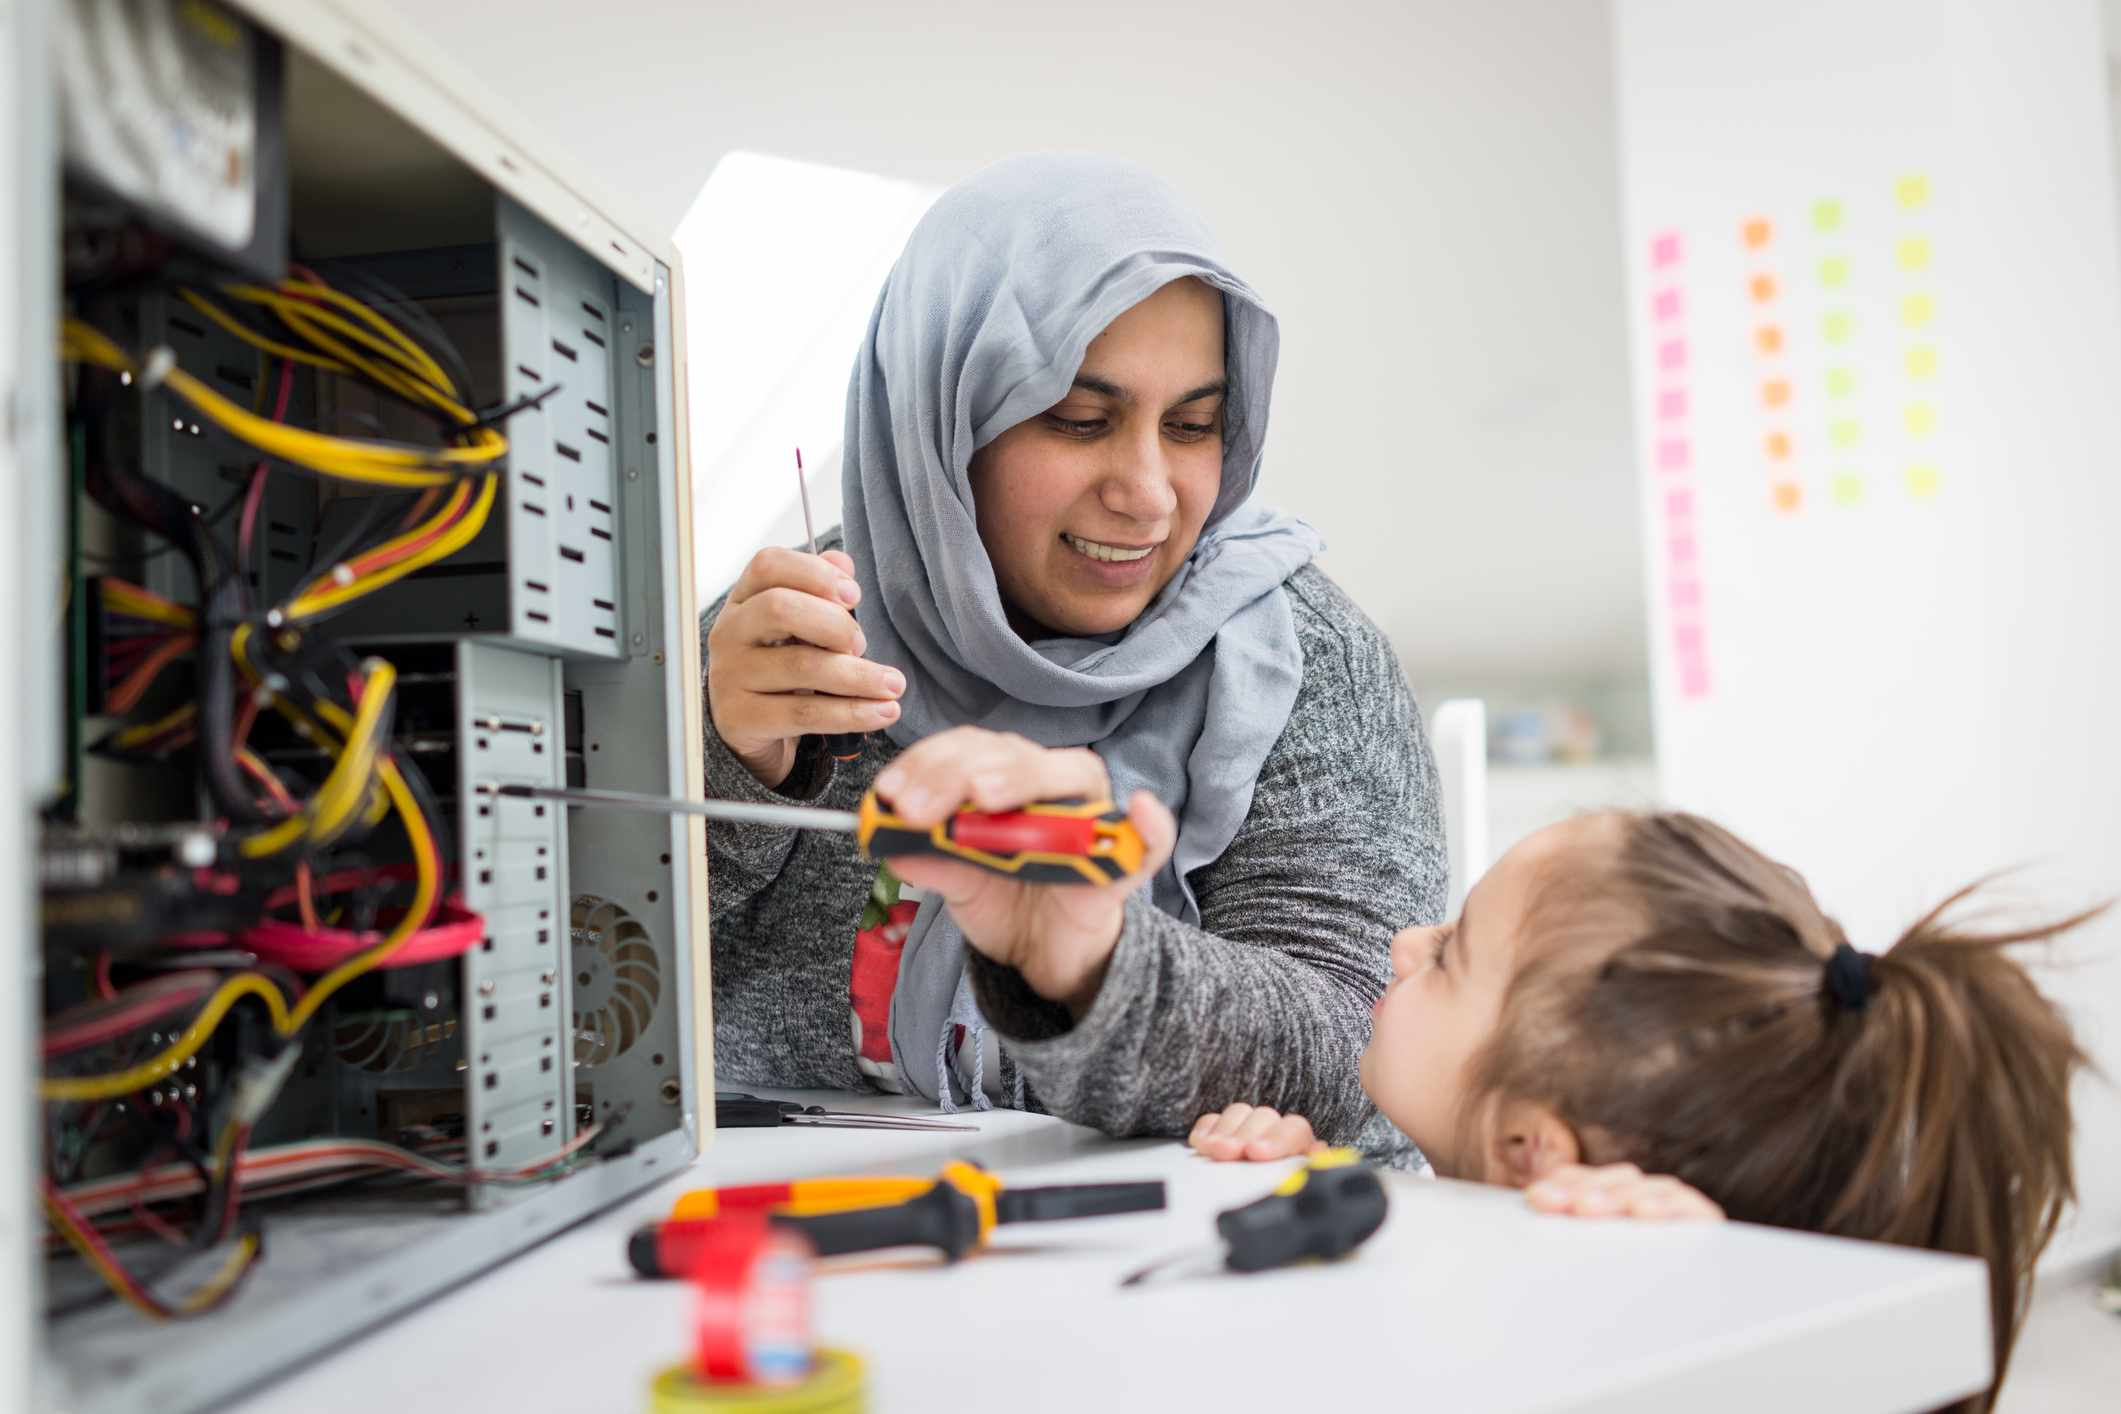 Woman wearing burka repairing a computer while child watches.